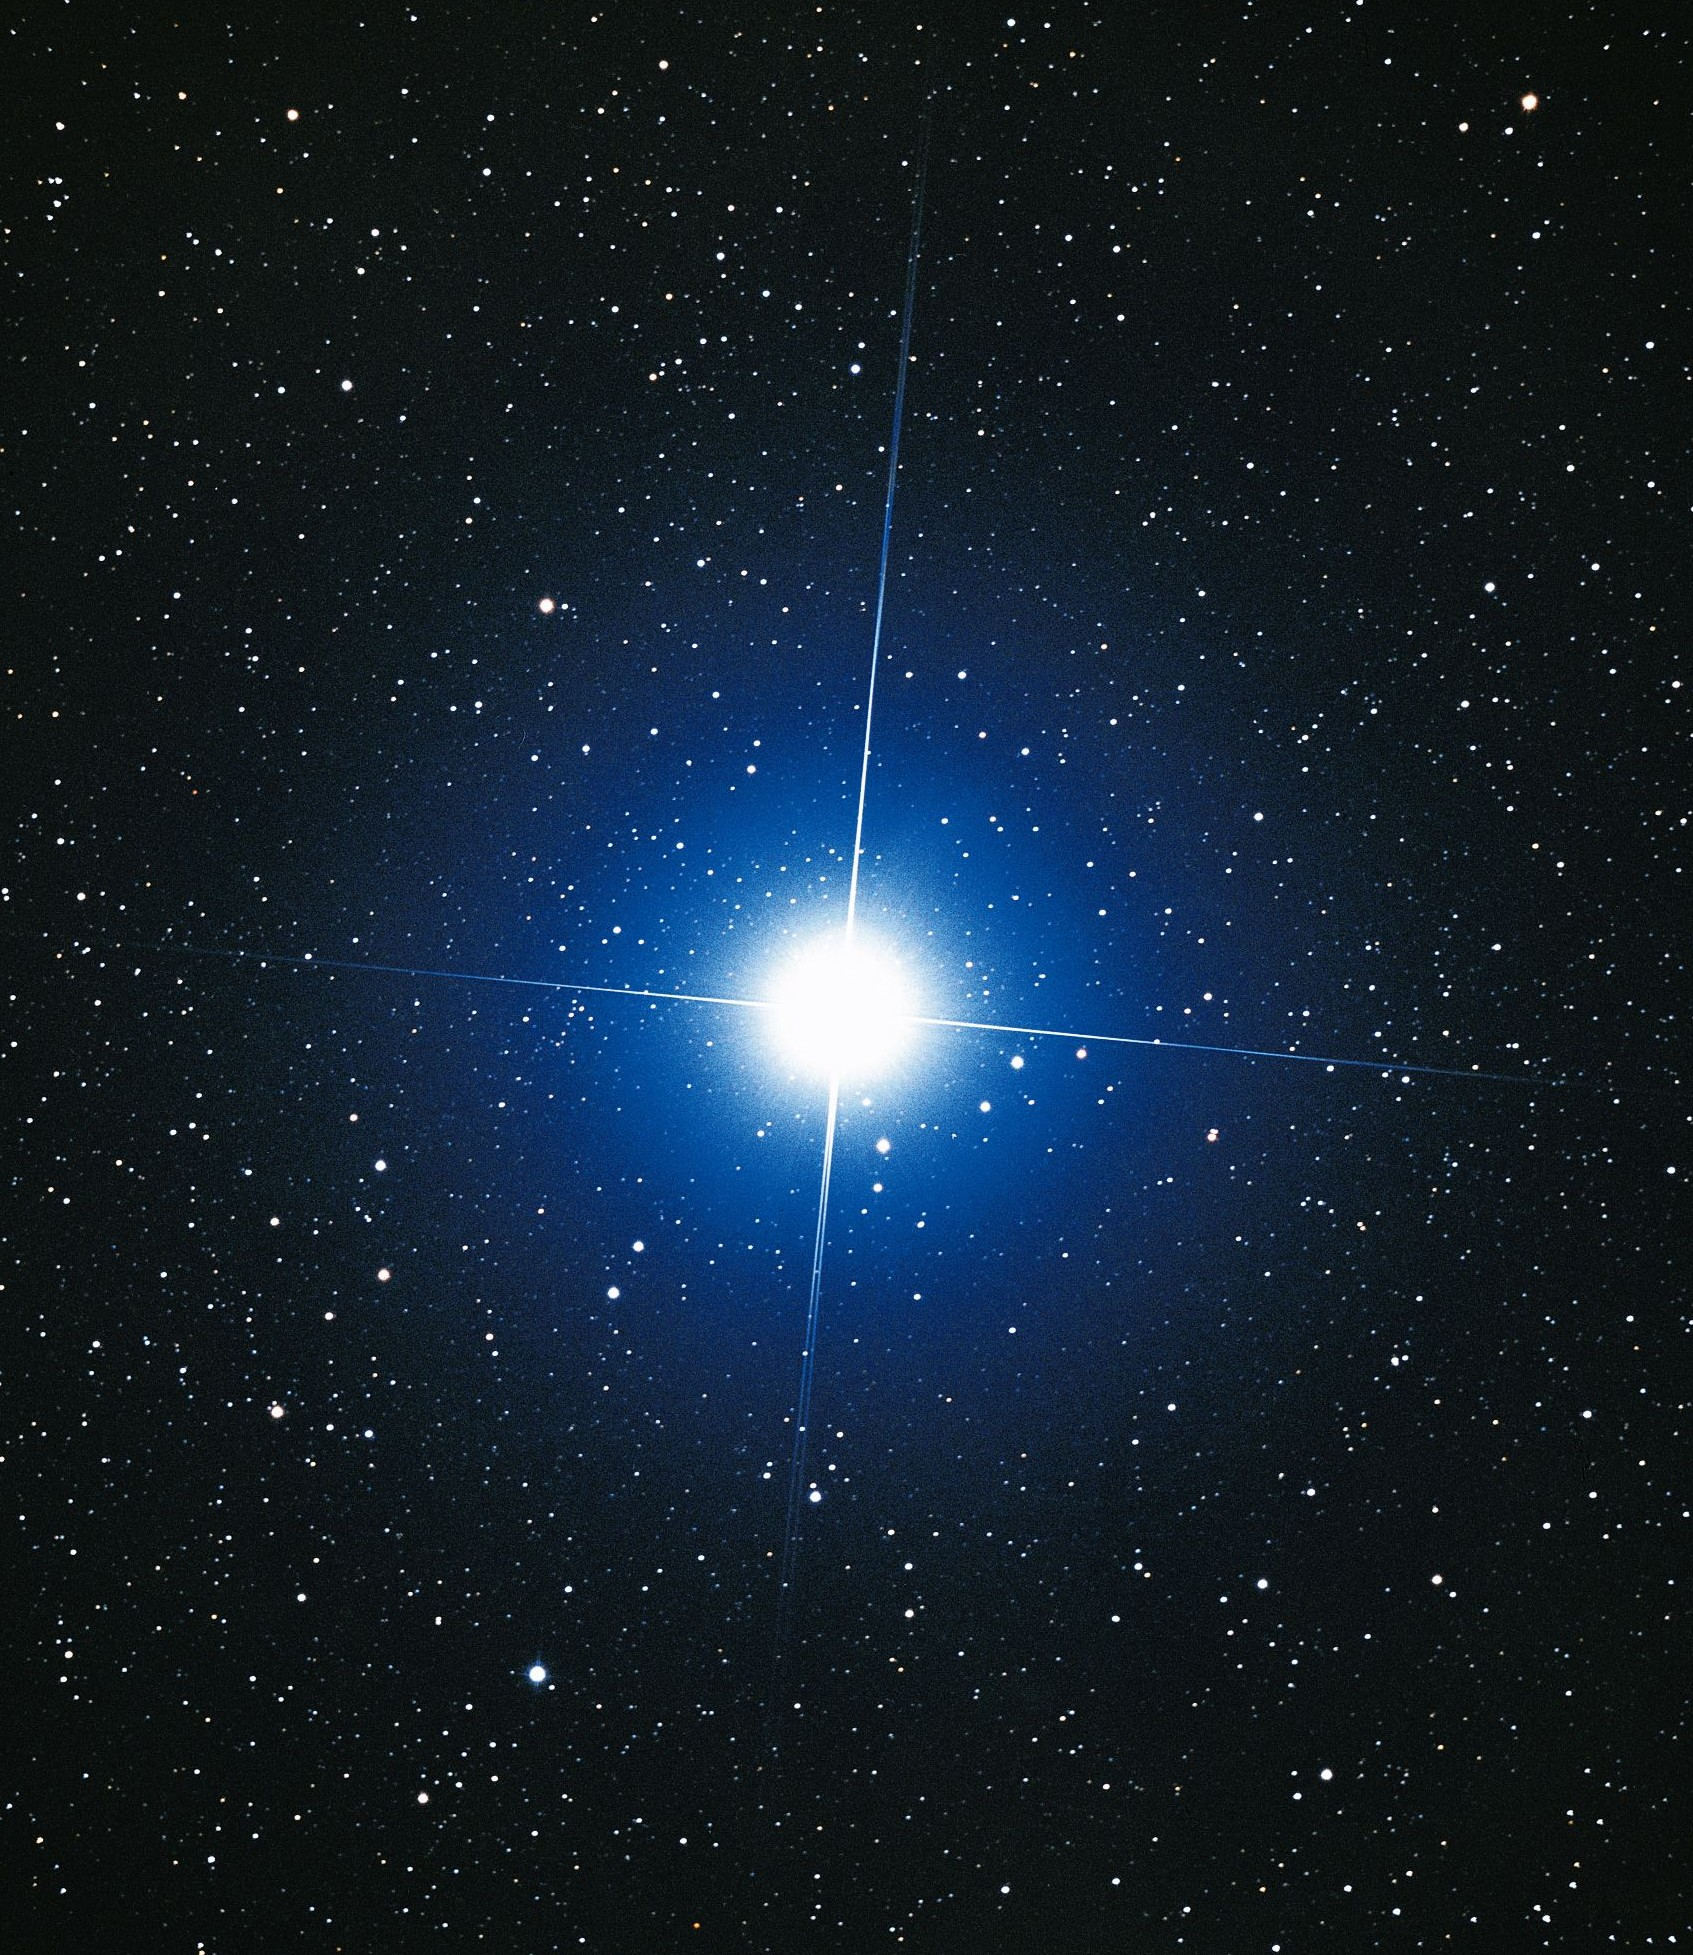 The Star of Isis is at its highest point in the night sky right now